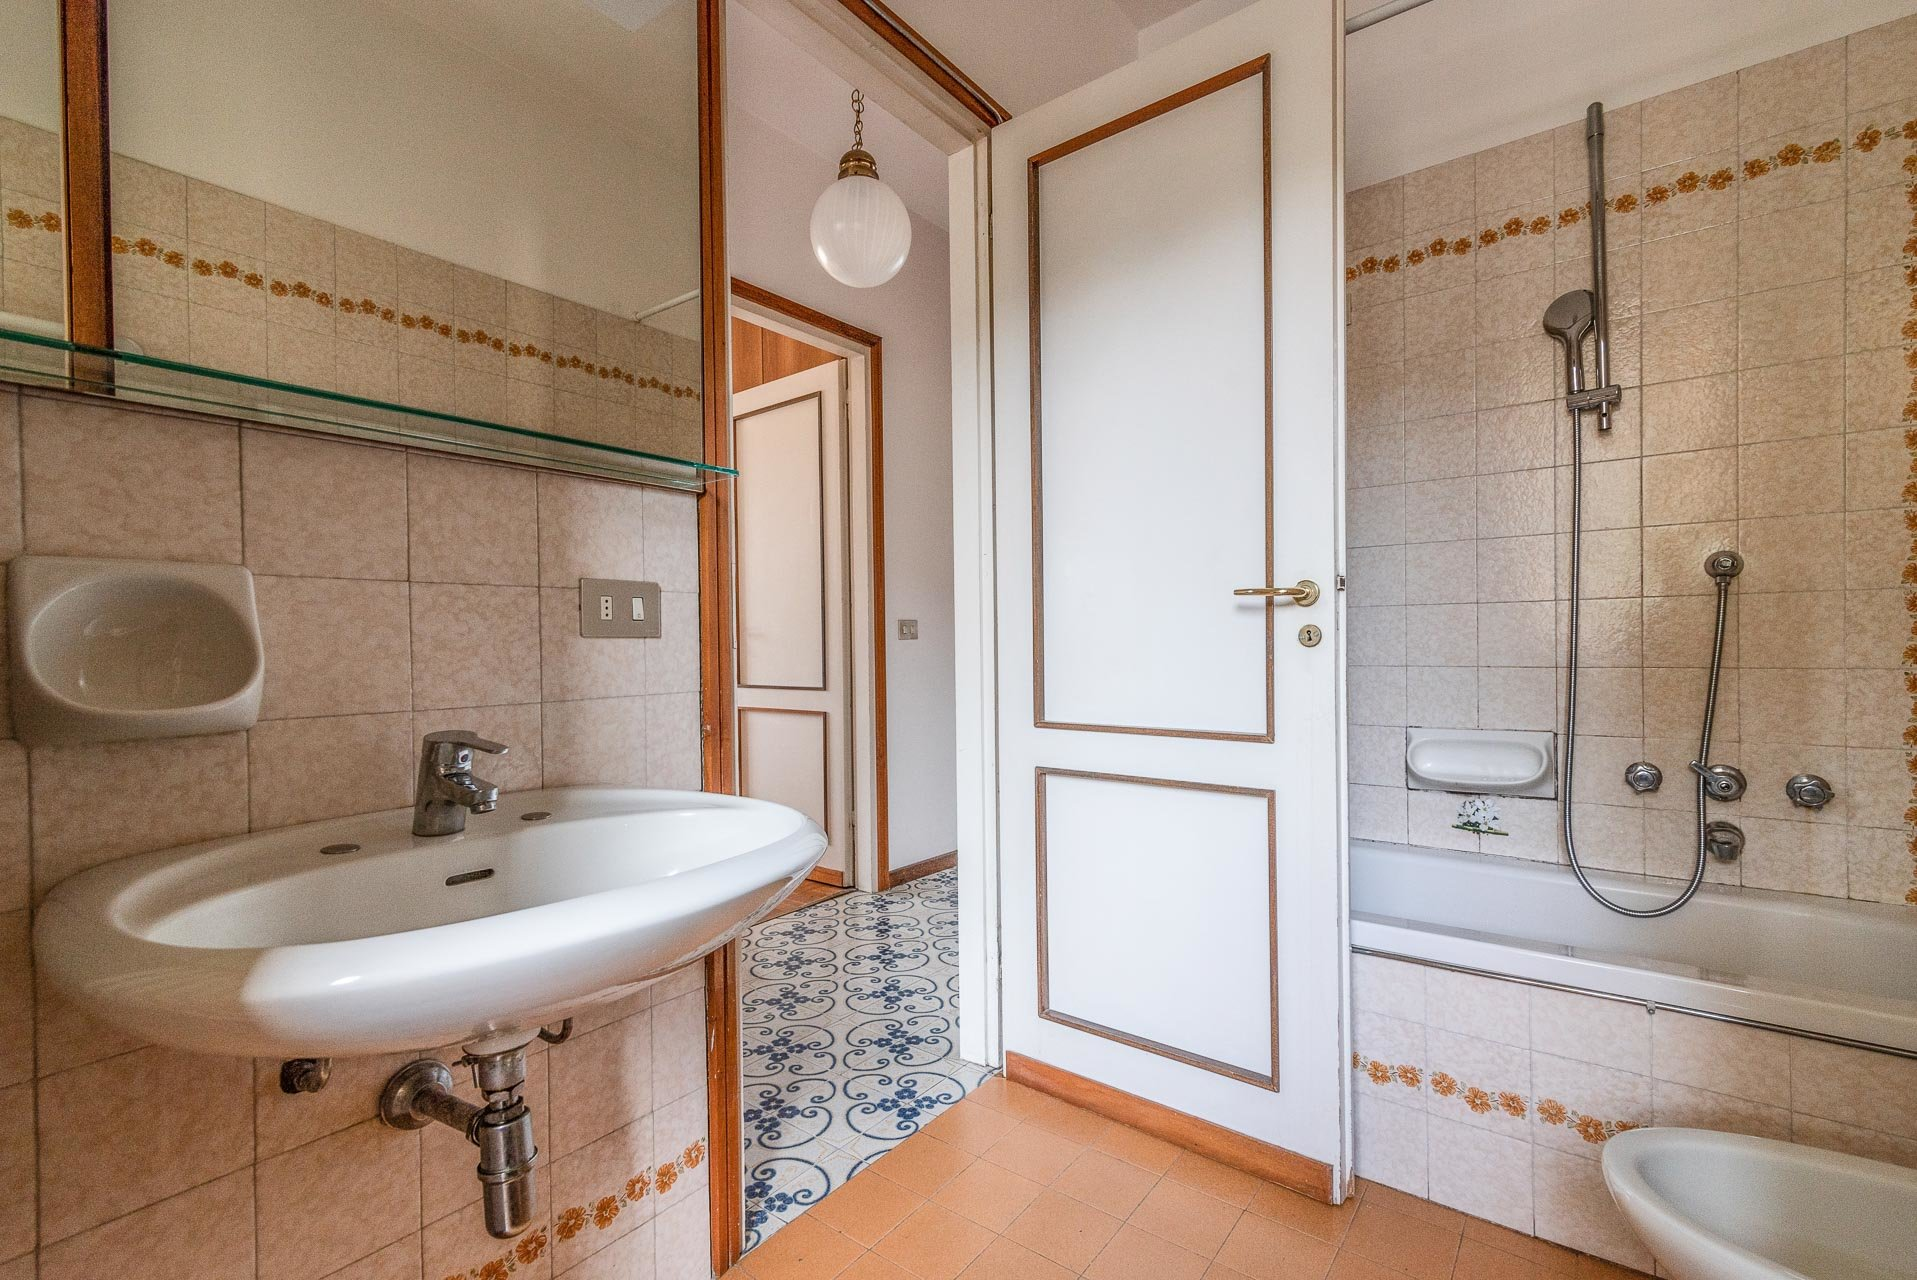 Apartment for rent in Stresa - bathroom with bath-tub